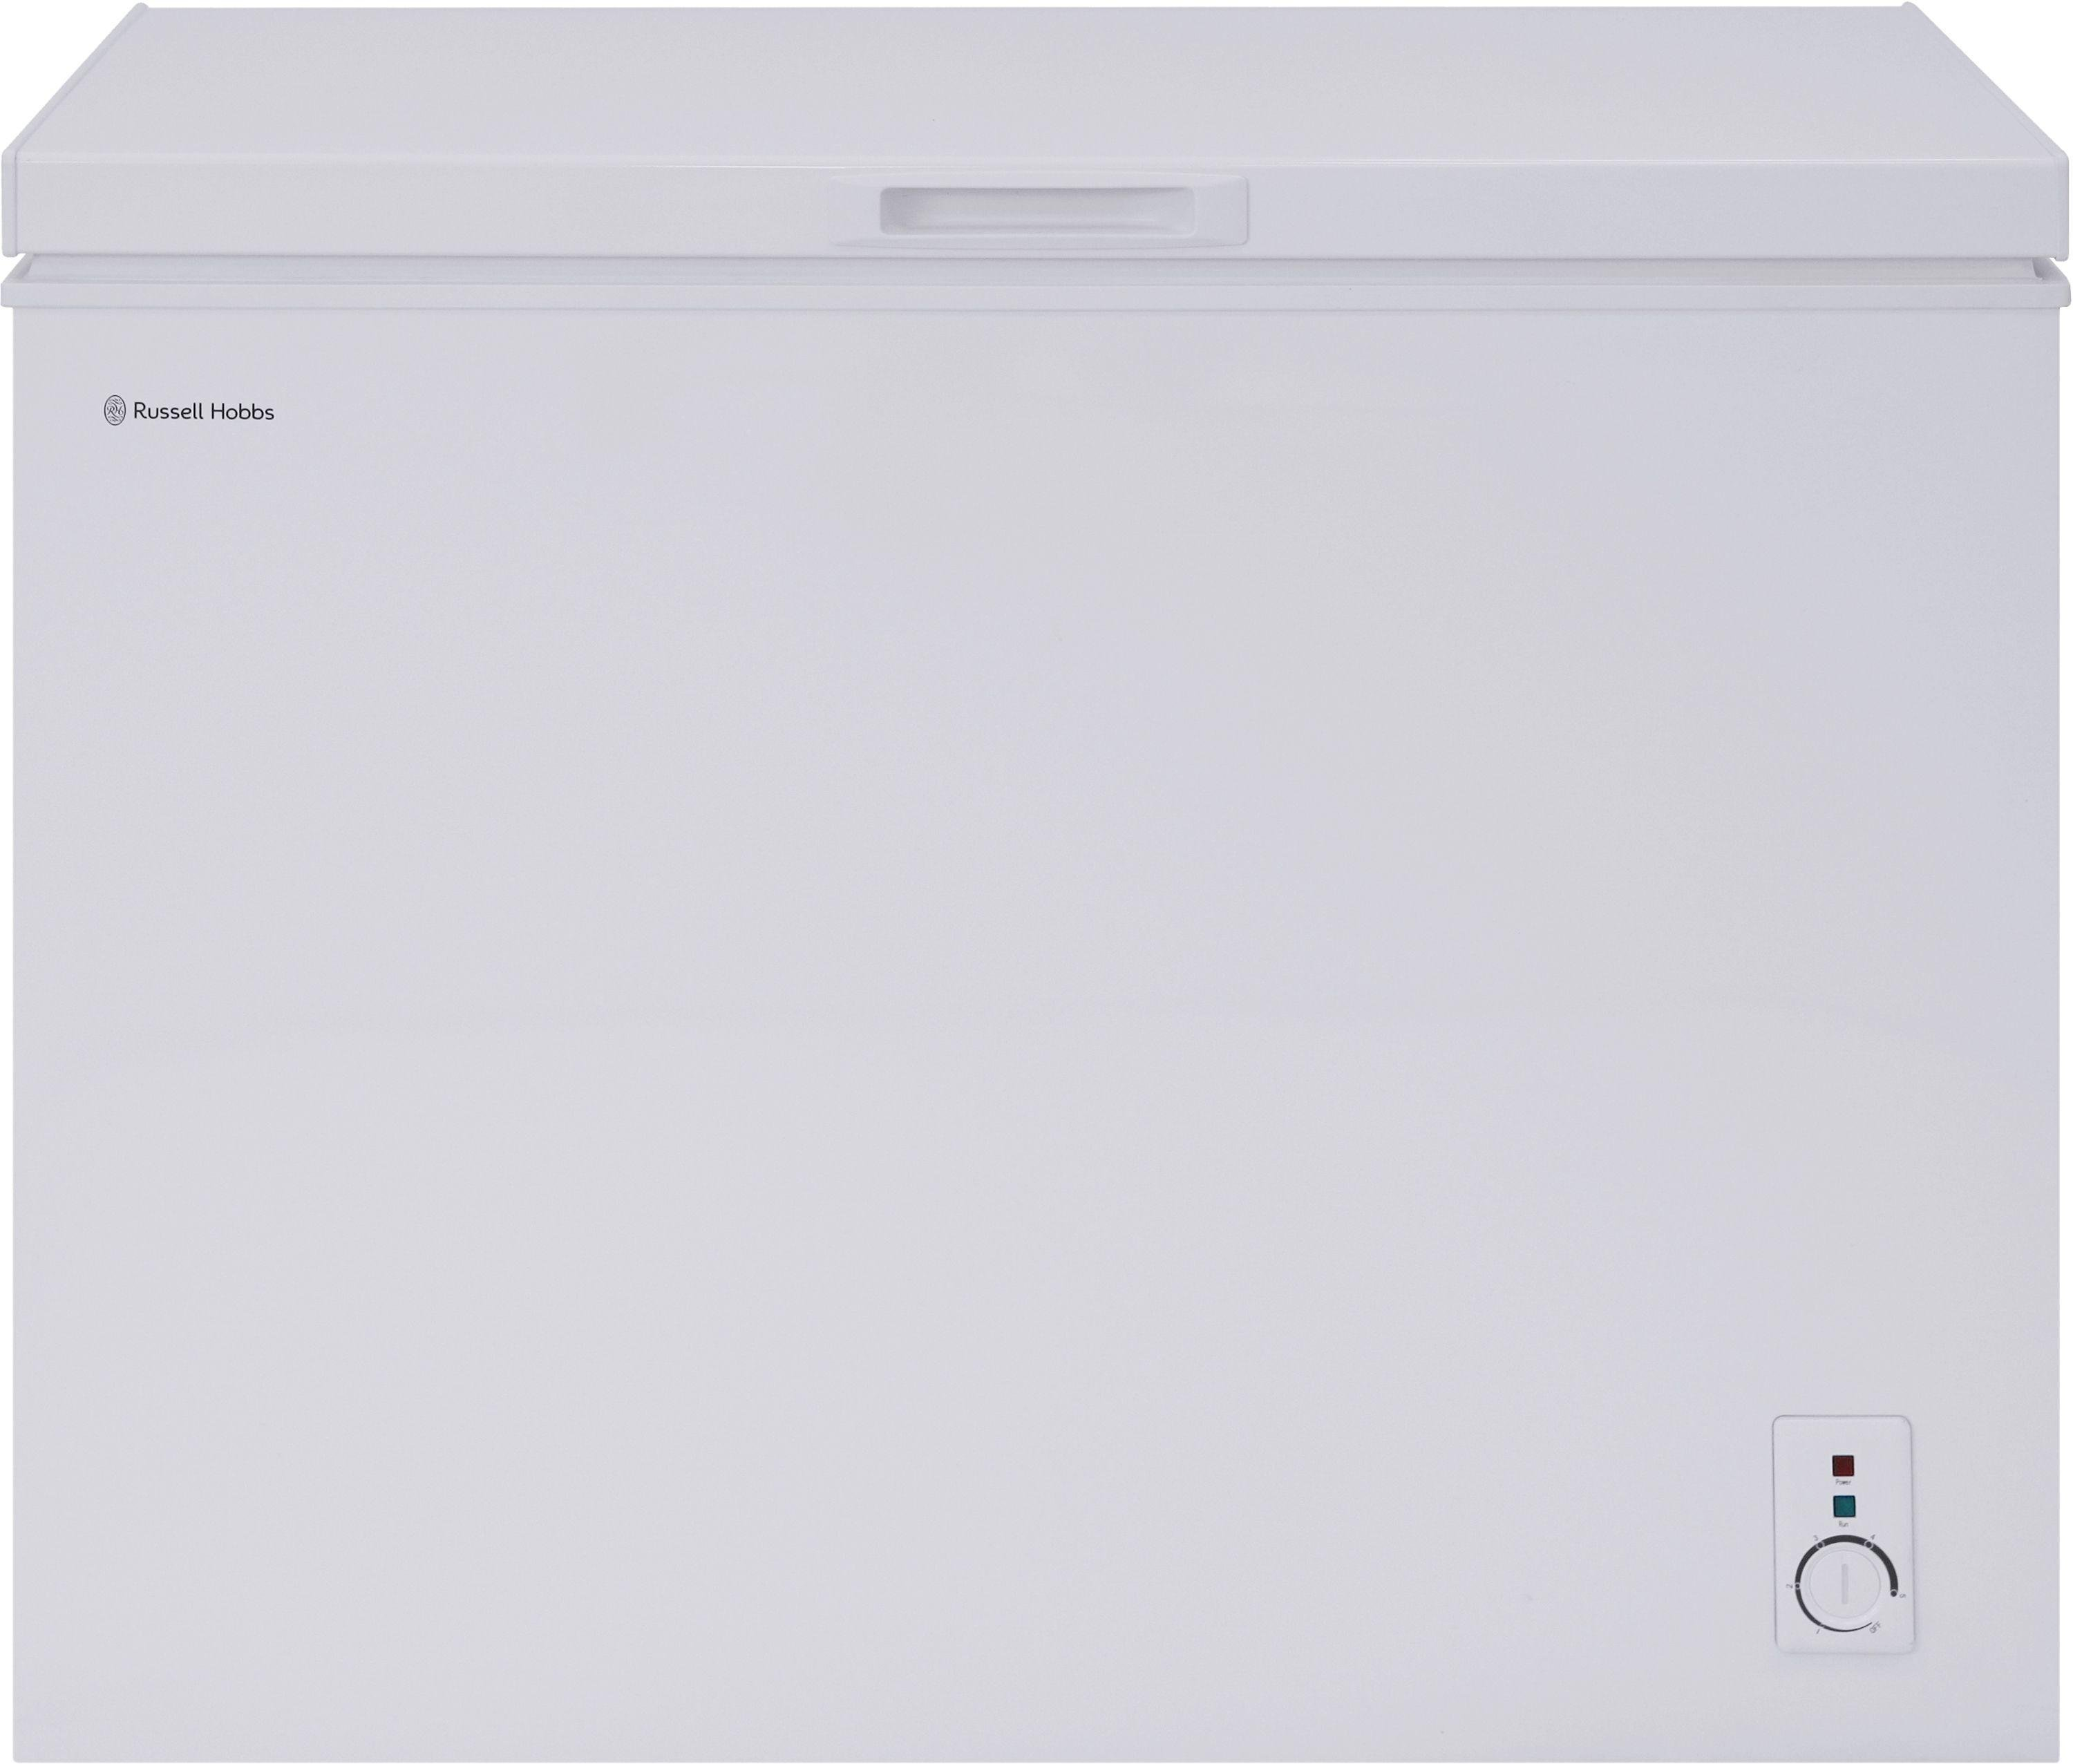 Russell Hobbs - RHCF200 - Chest - Freezer - White/Ins/Del/Rec